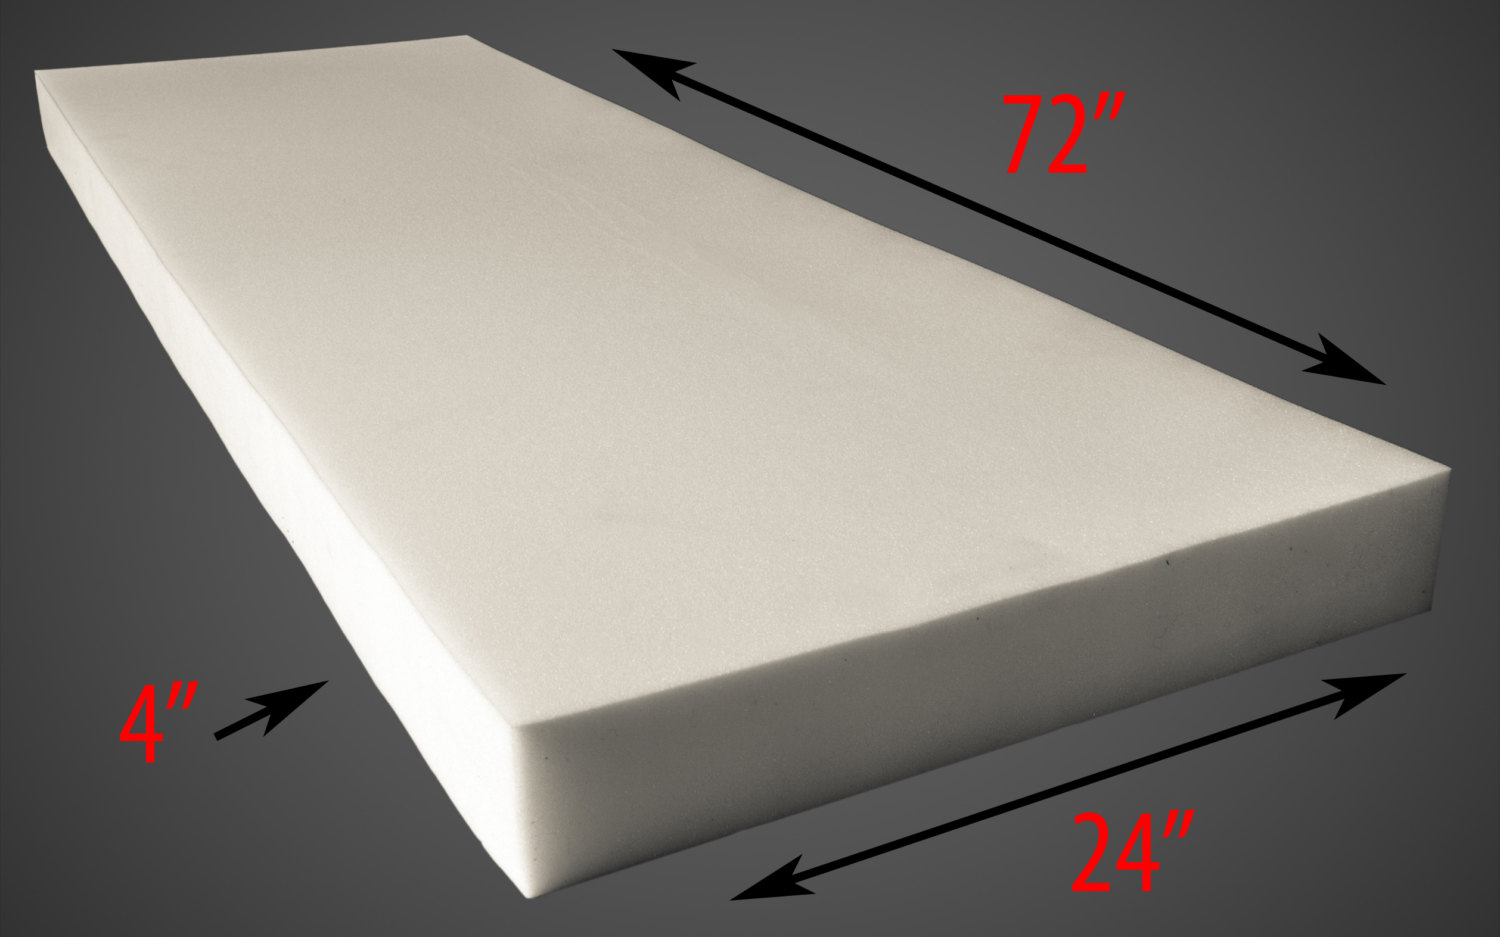 High Density Upholstery Foam | Upholstery Foam Density | Poly Foam for Cushions